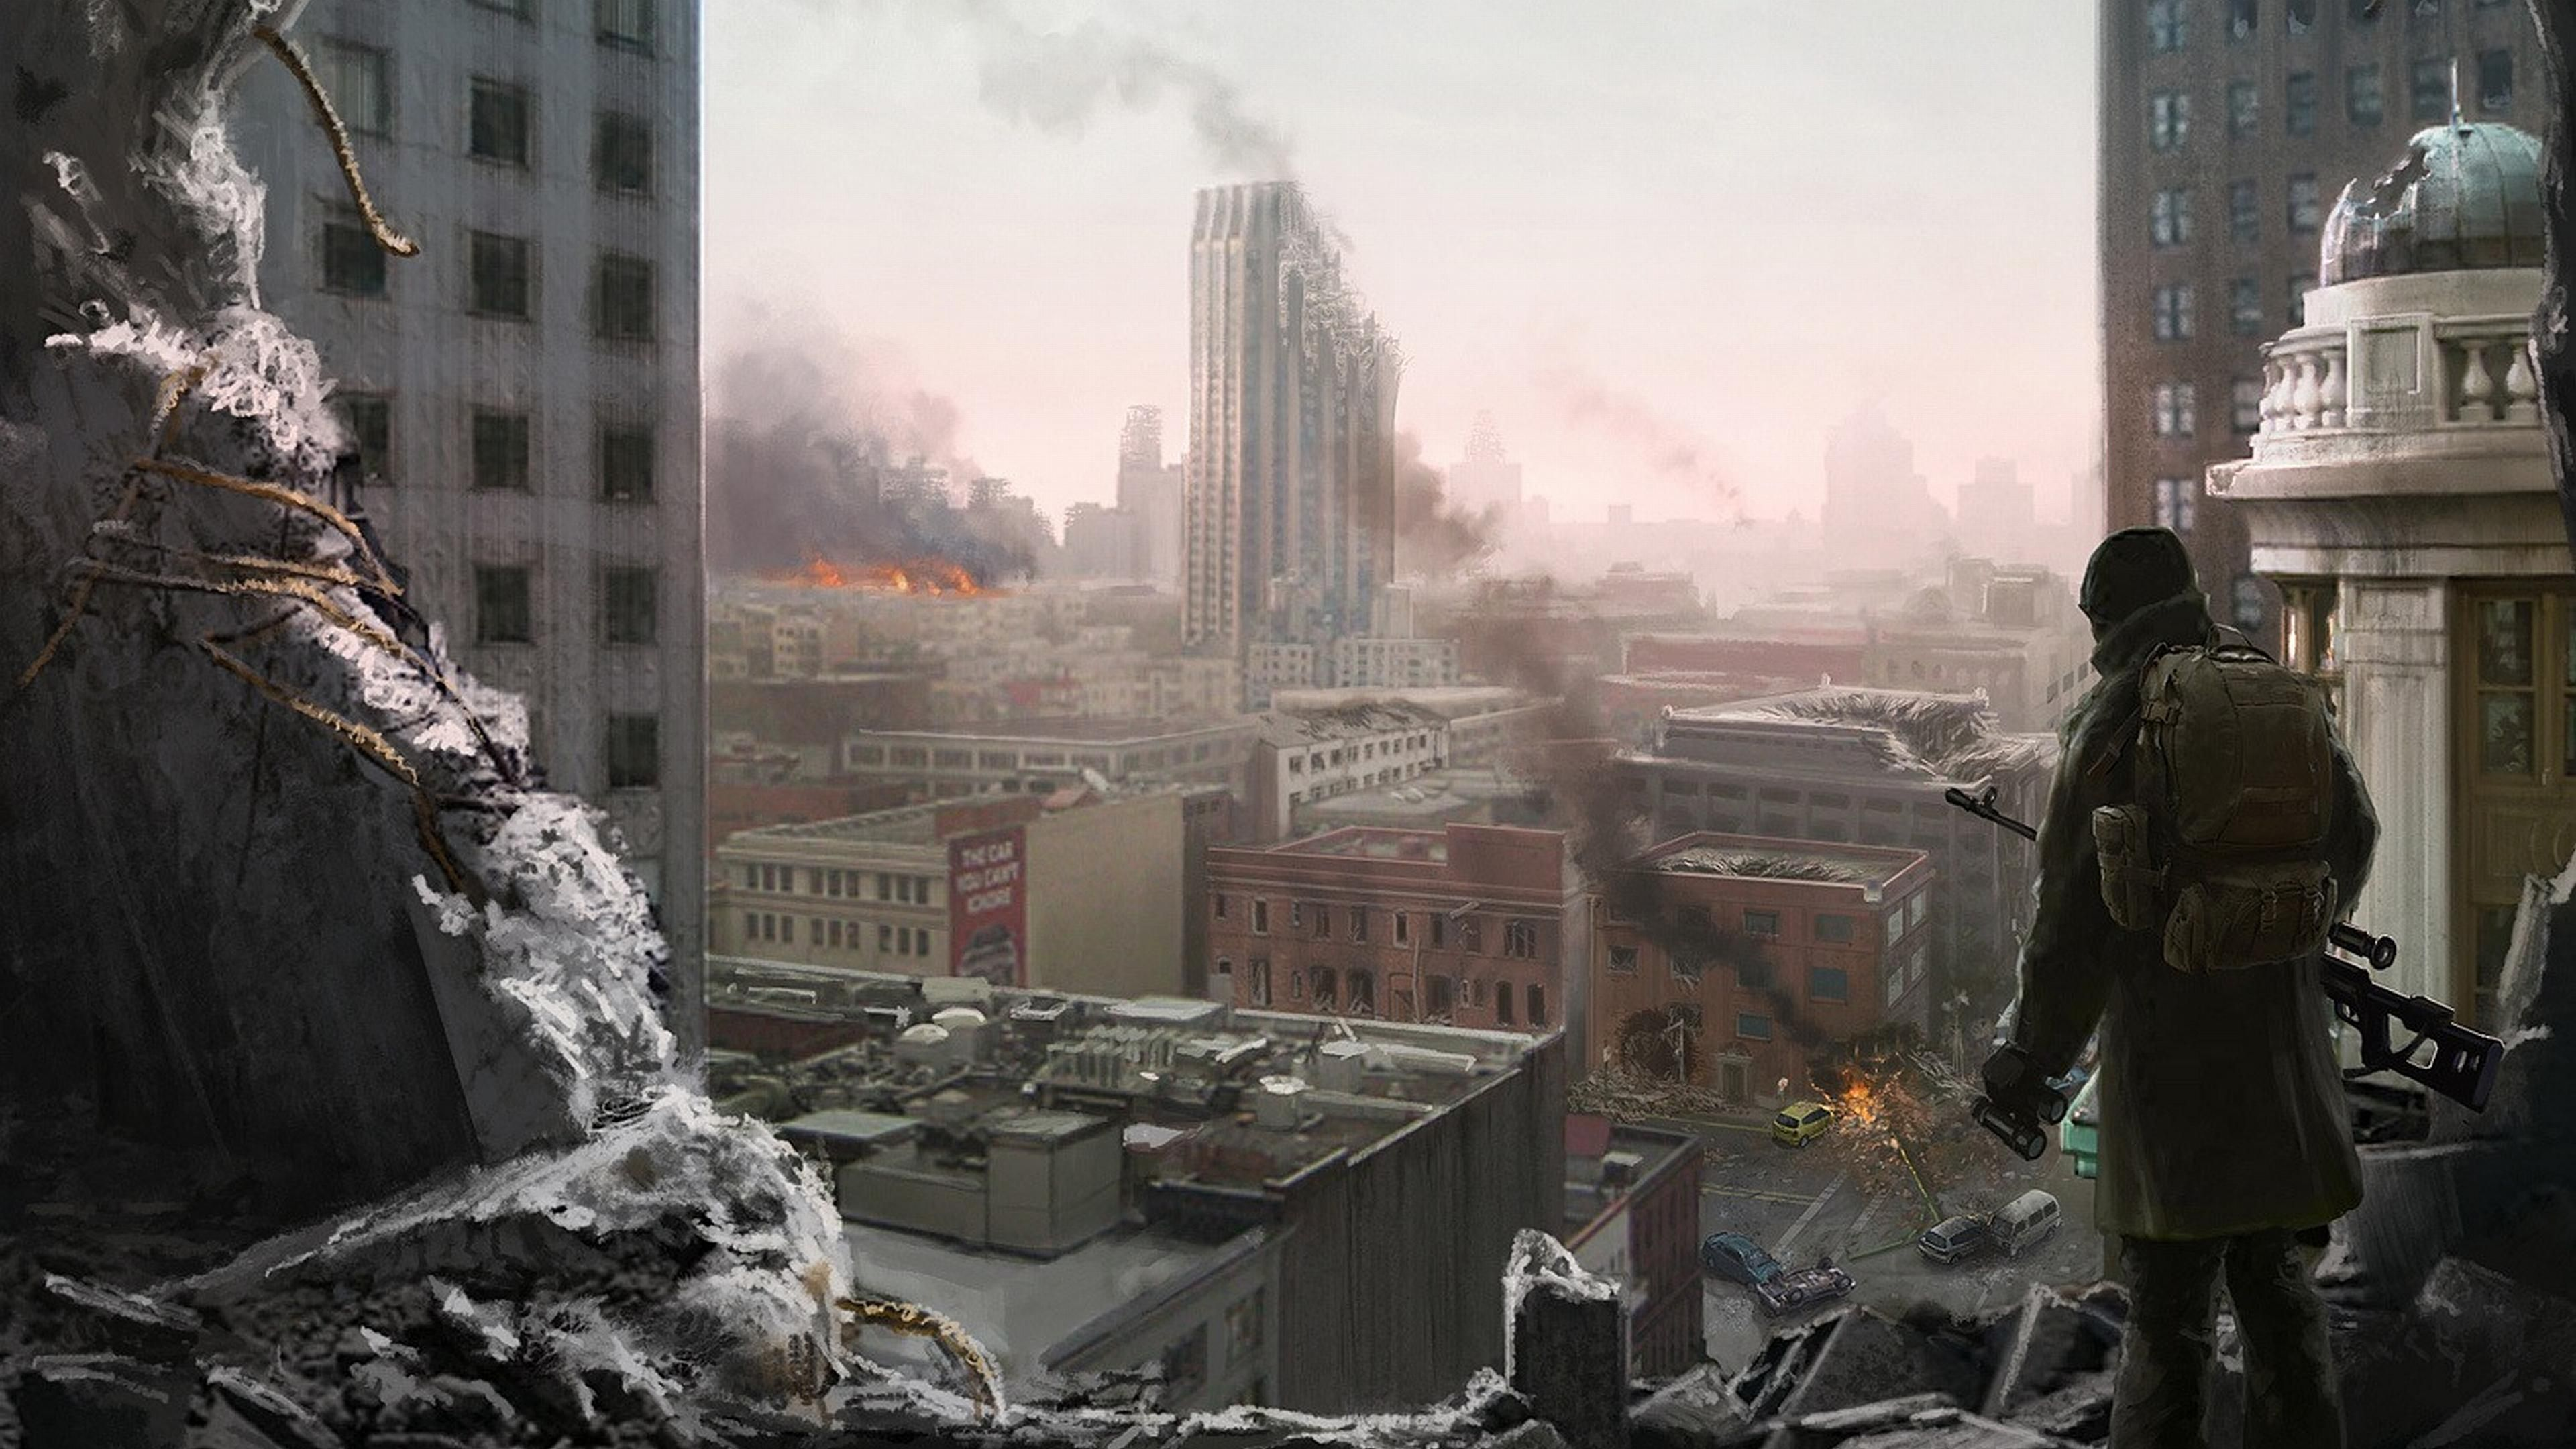 apocalyptic city wallpaper - photo #9